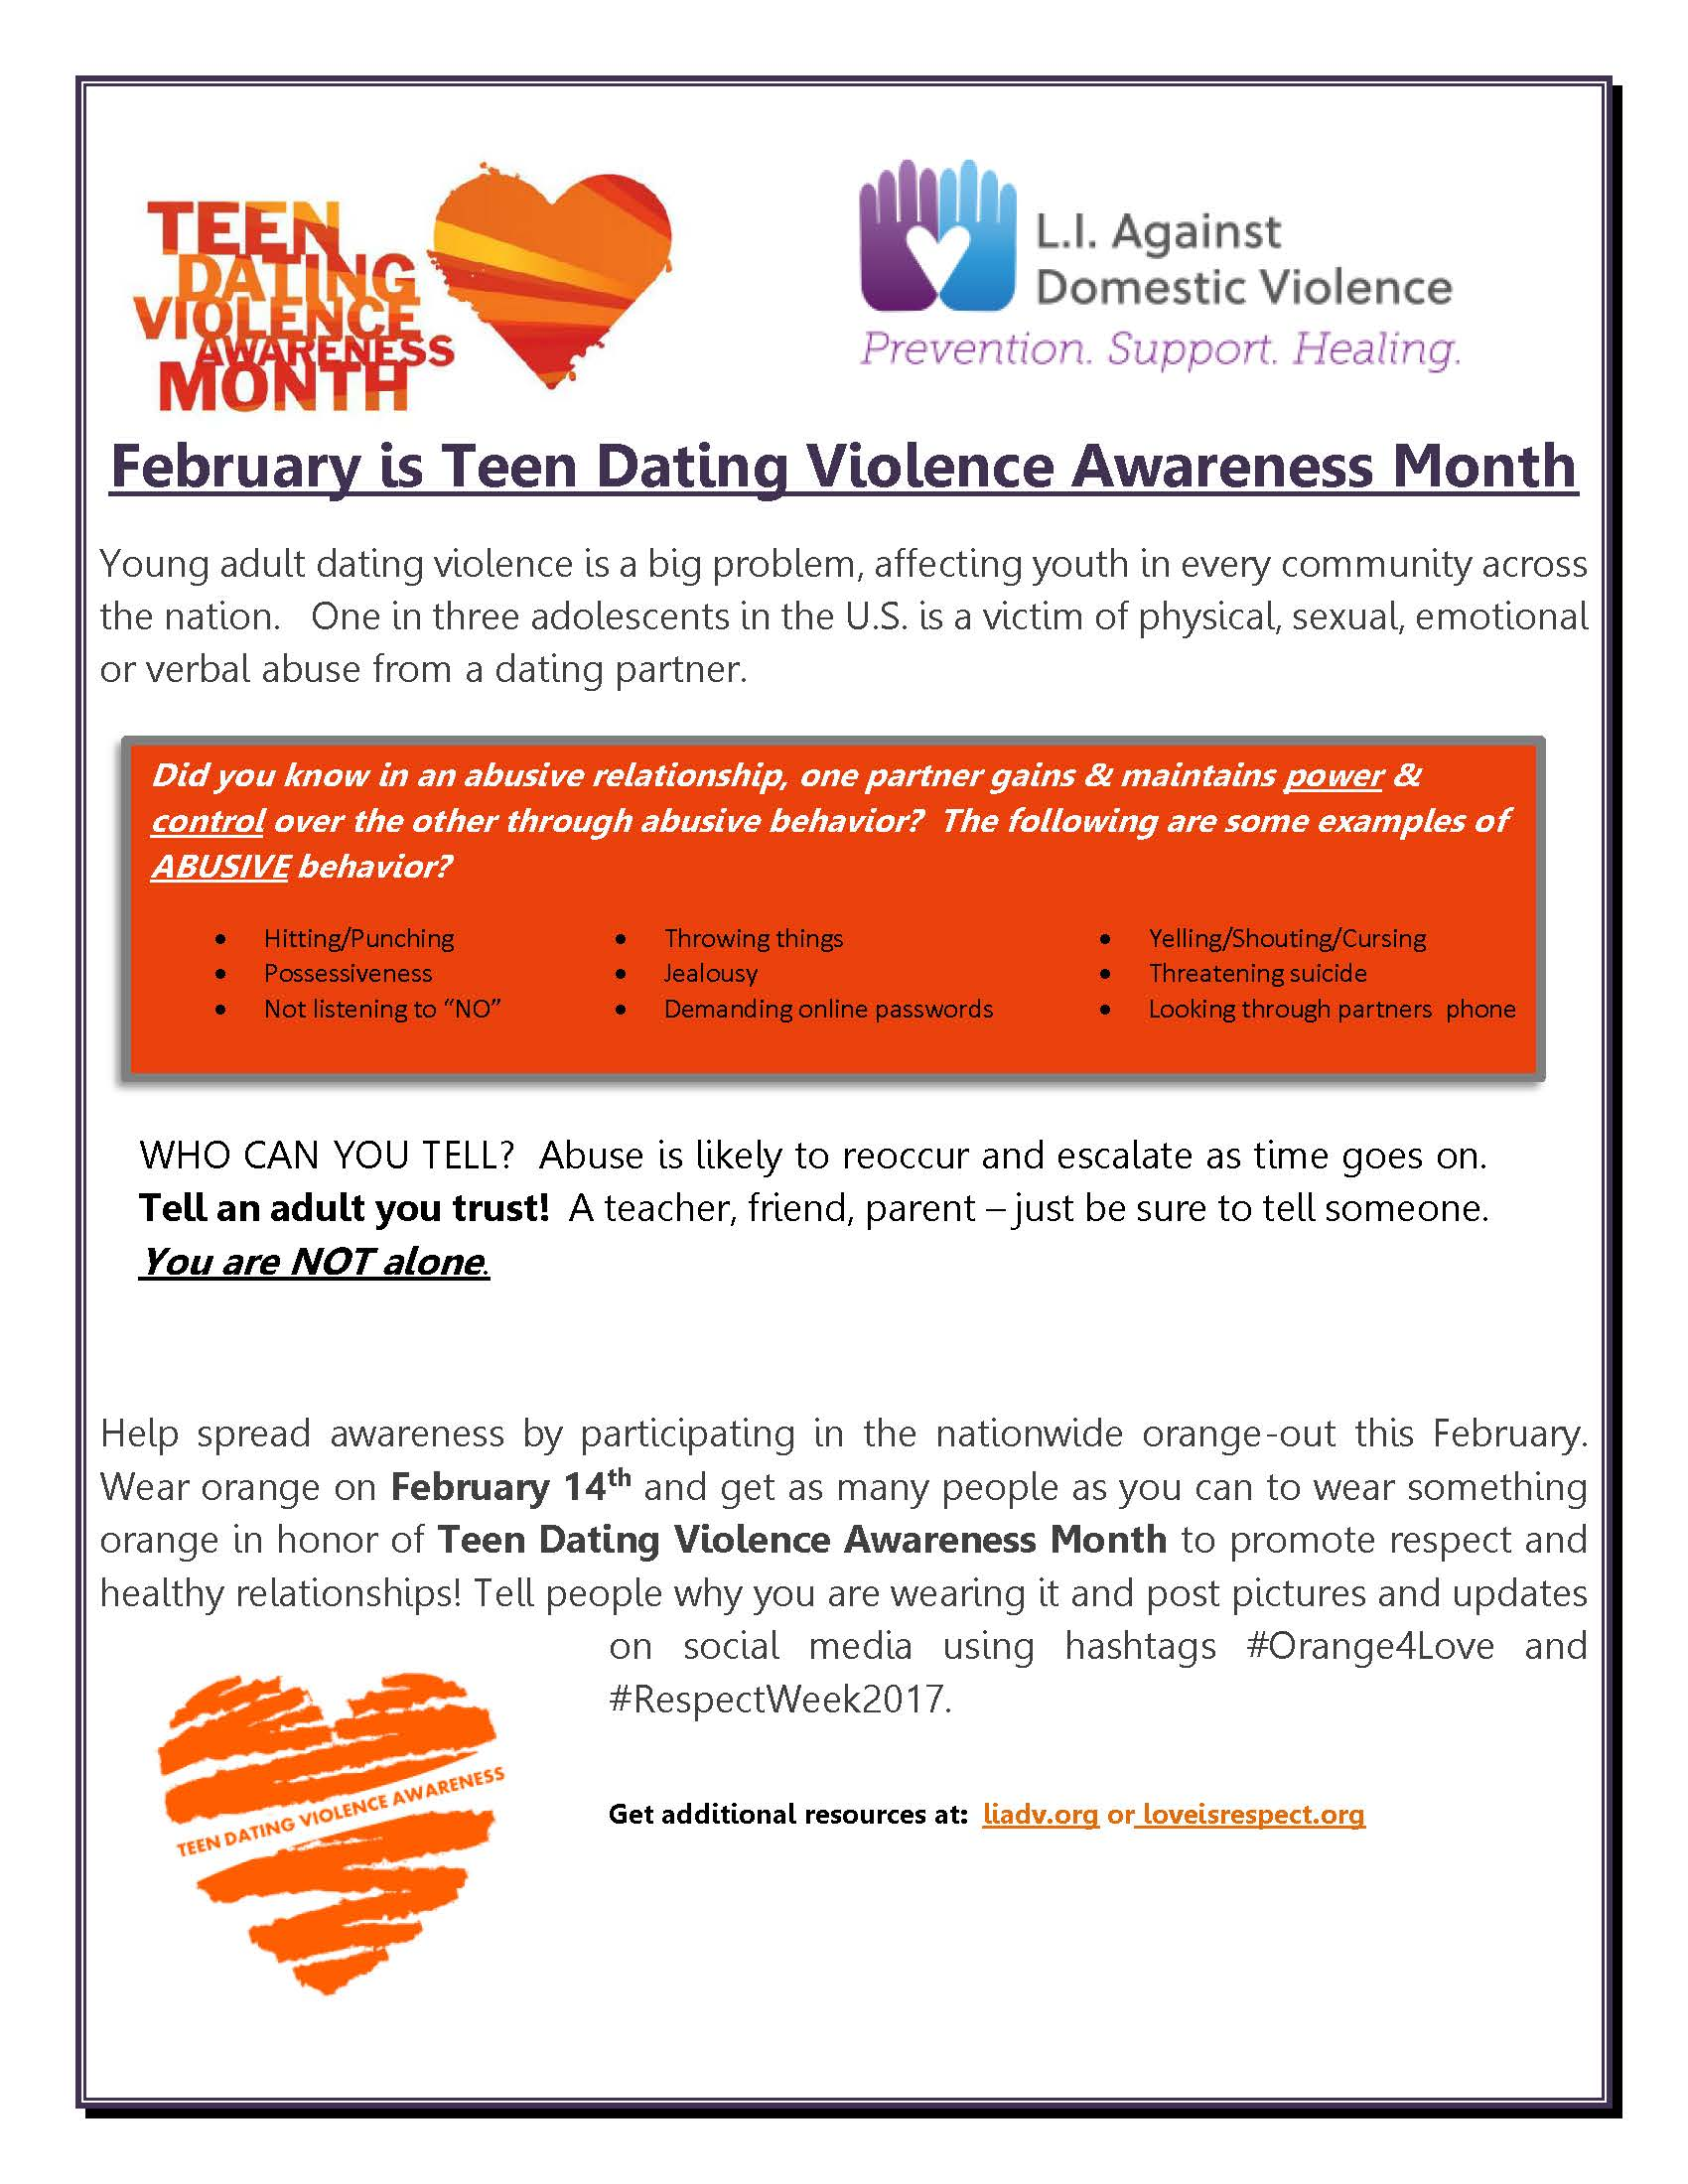 Teen dating violence statistics in ny